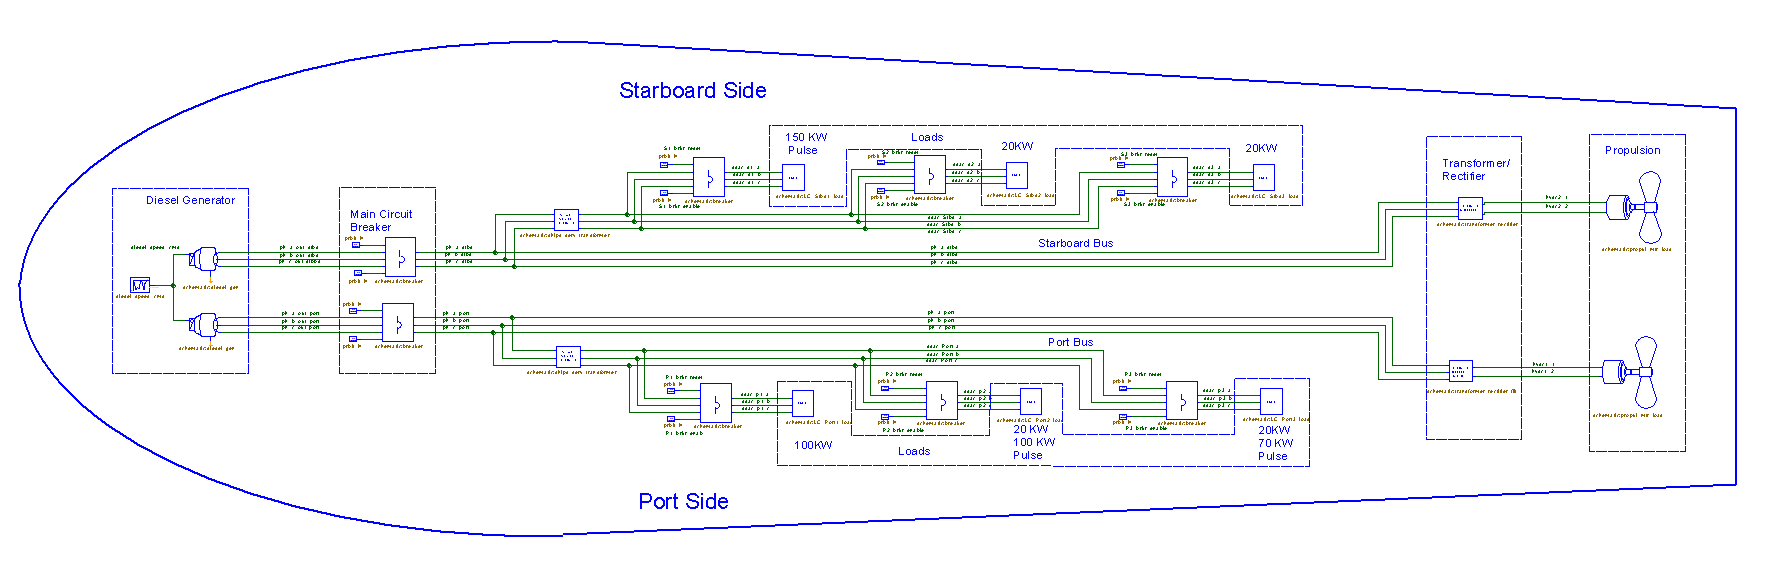 Shipboard Power Generation and Distribution System Design